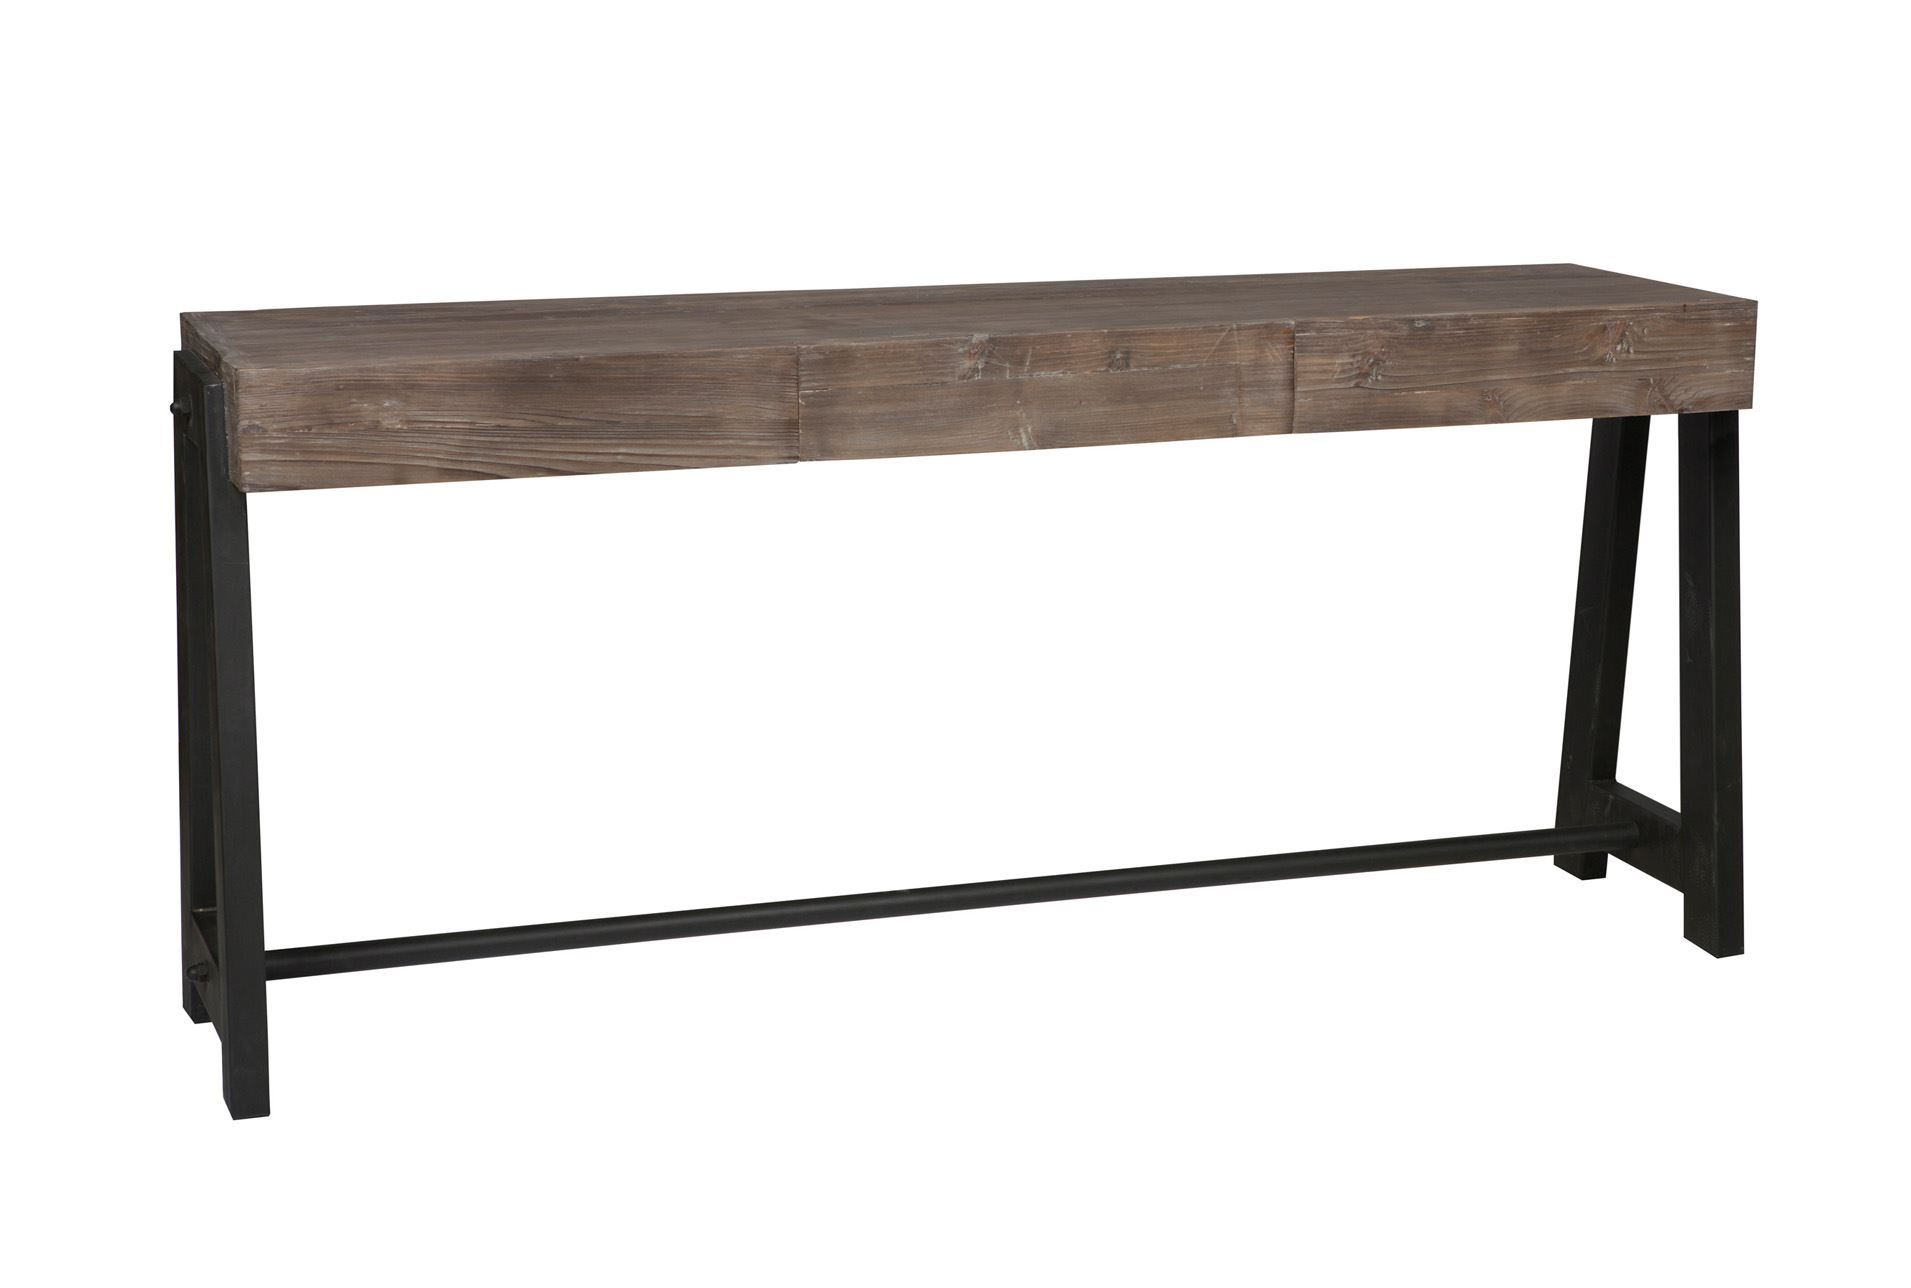 Otb marcellus mocha console table living spaces for Living spaces sofa table